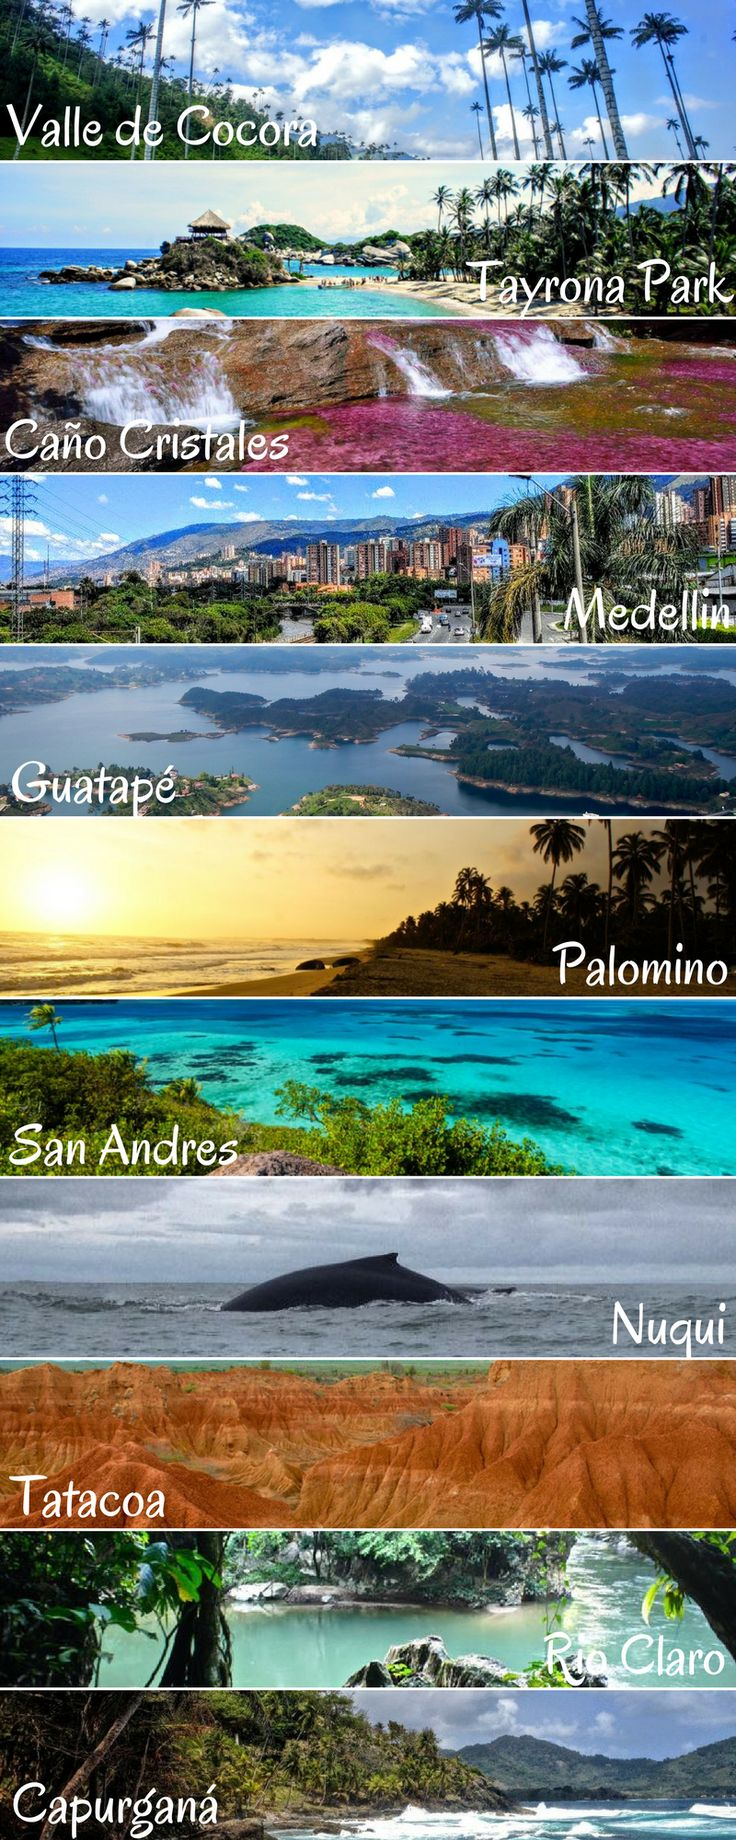 Colombia!! After living almost 3 years in Colombia my blog developed a strong focus on this amazing country. But not only Colombia, I also love the rest of South America. Help me spread the beauty of this diverse country and please repin. People should kn